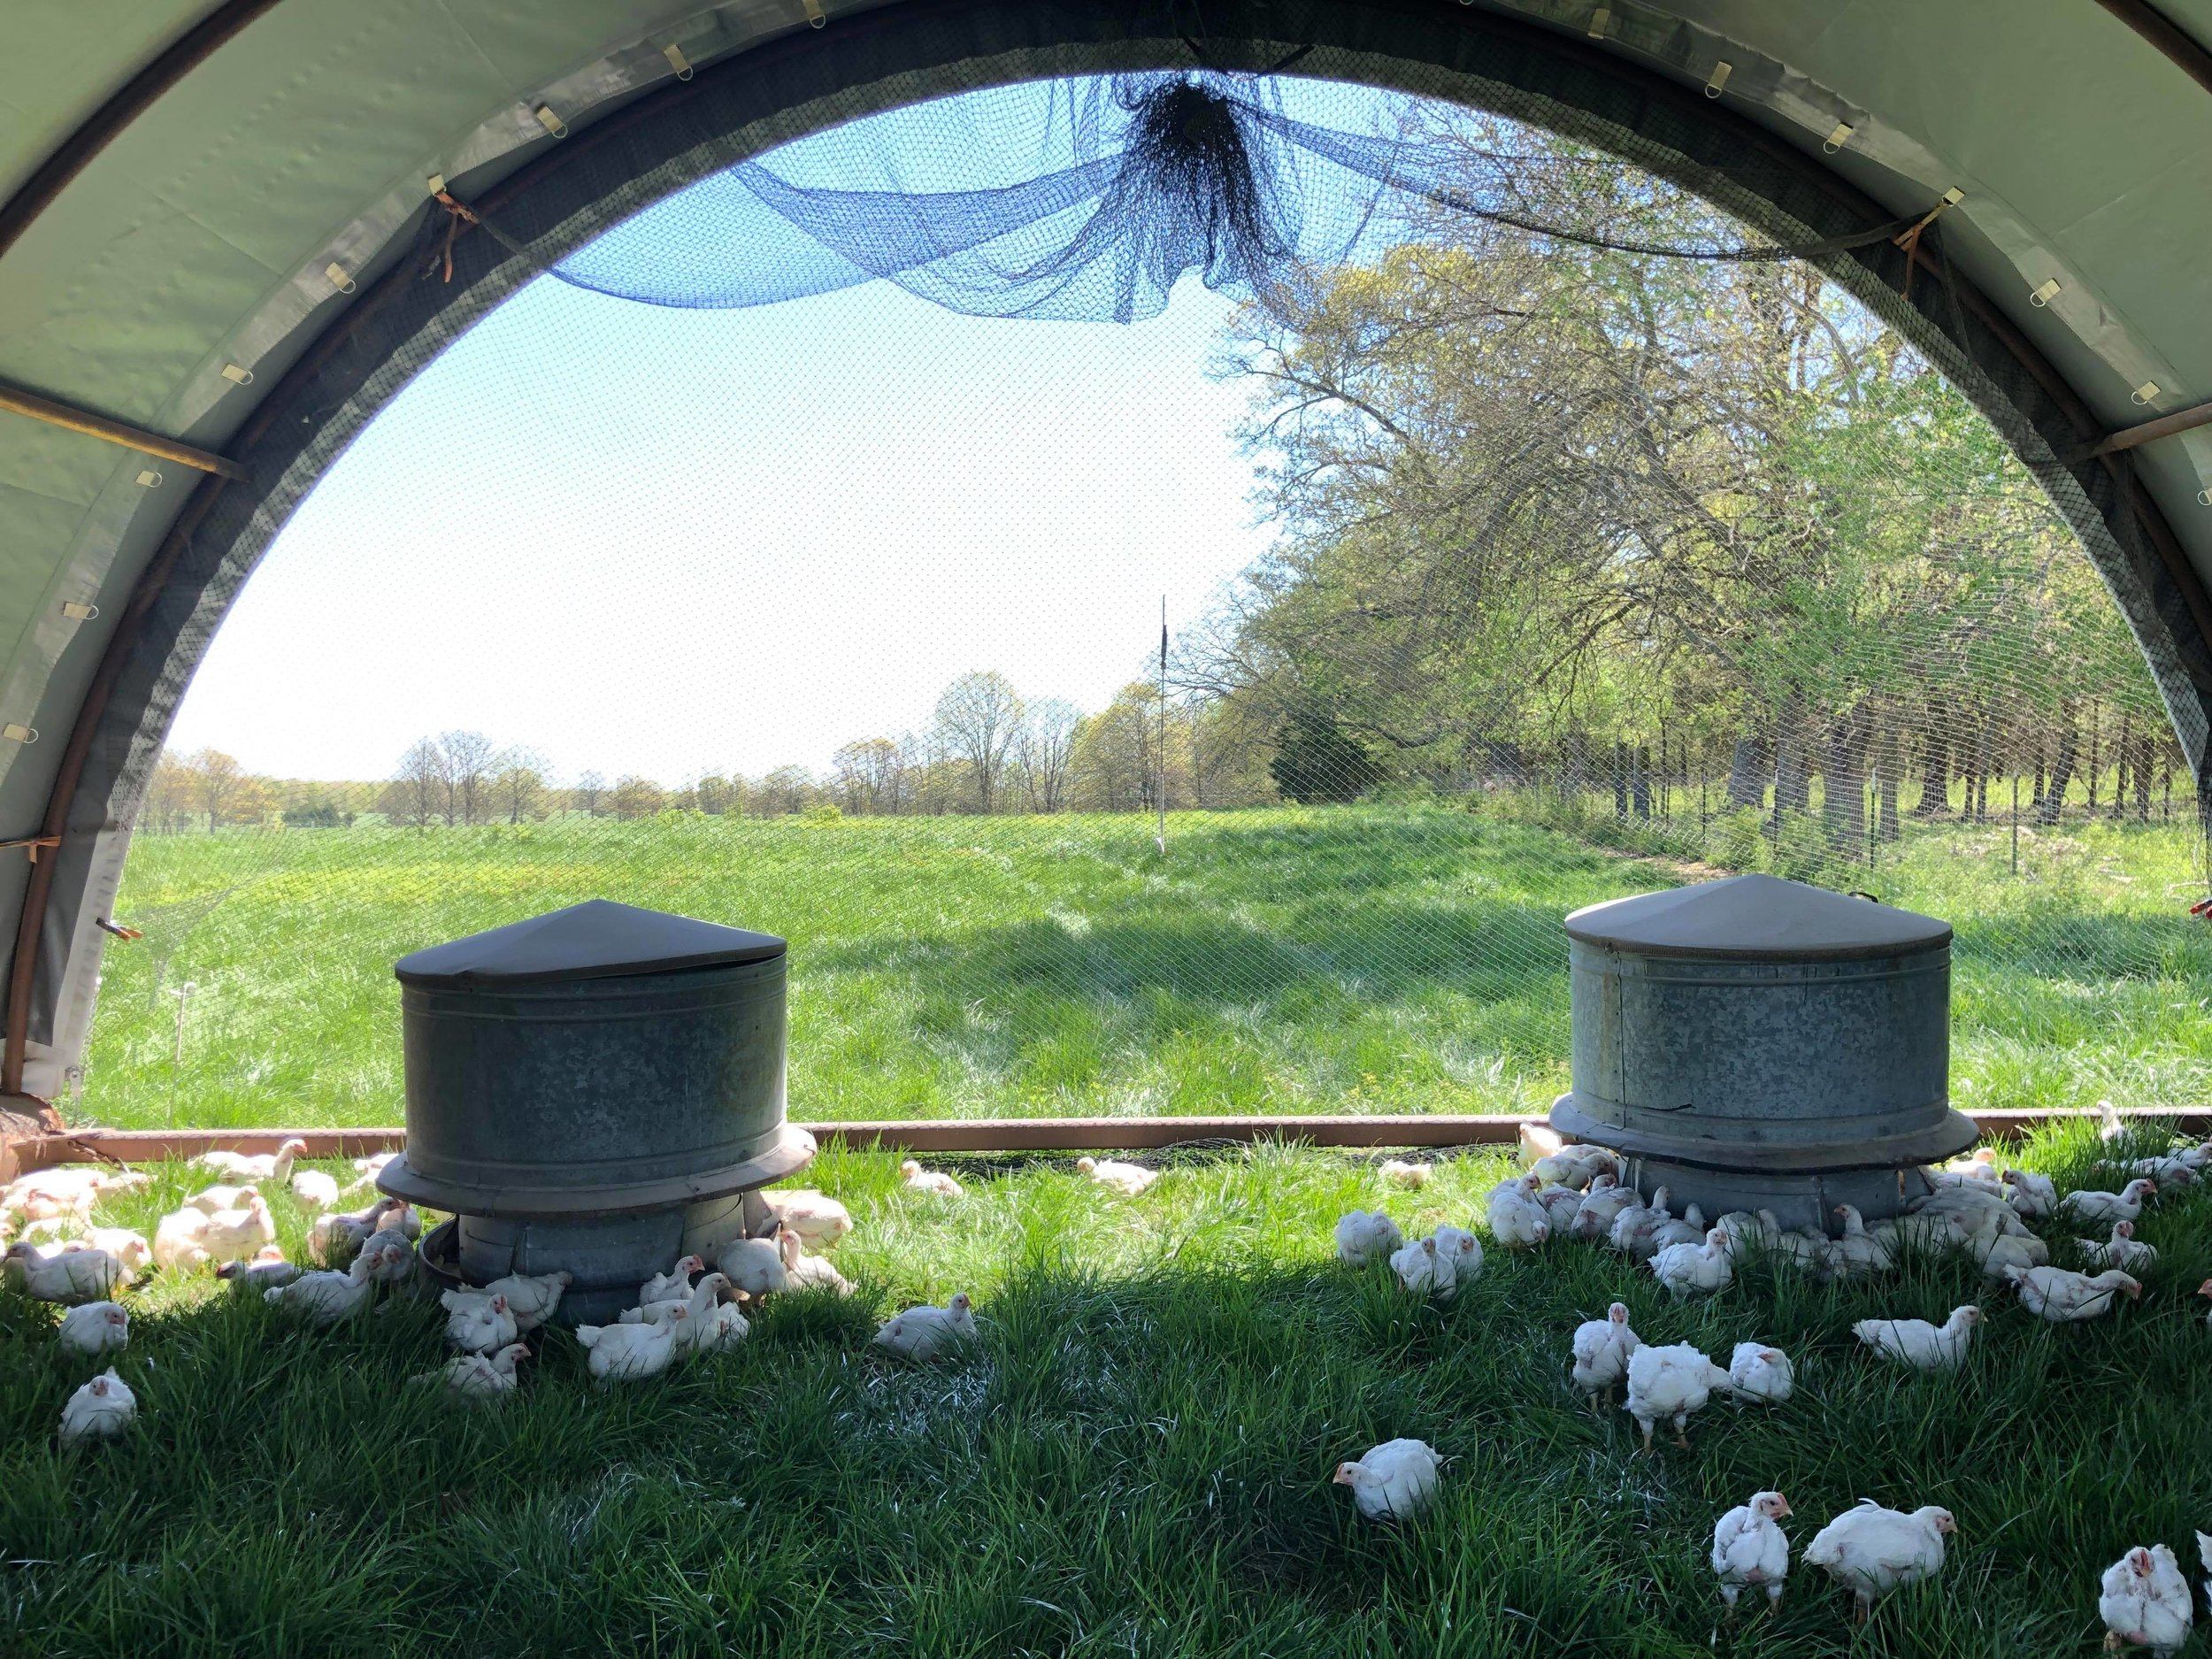 Our 2019 chickens in their hoop house, looking for the first bugs of the season.